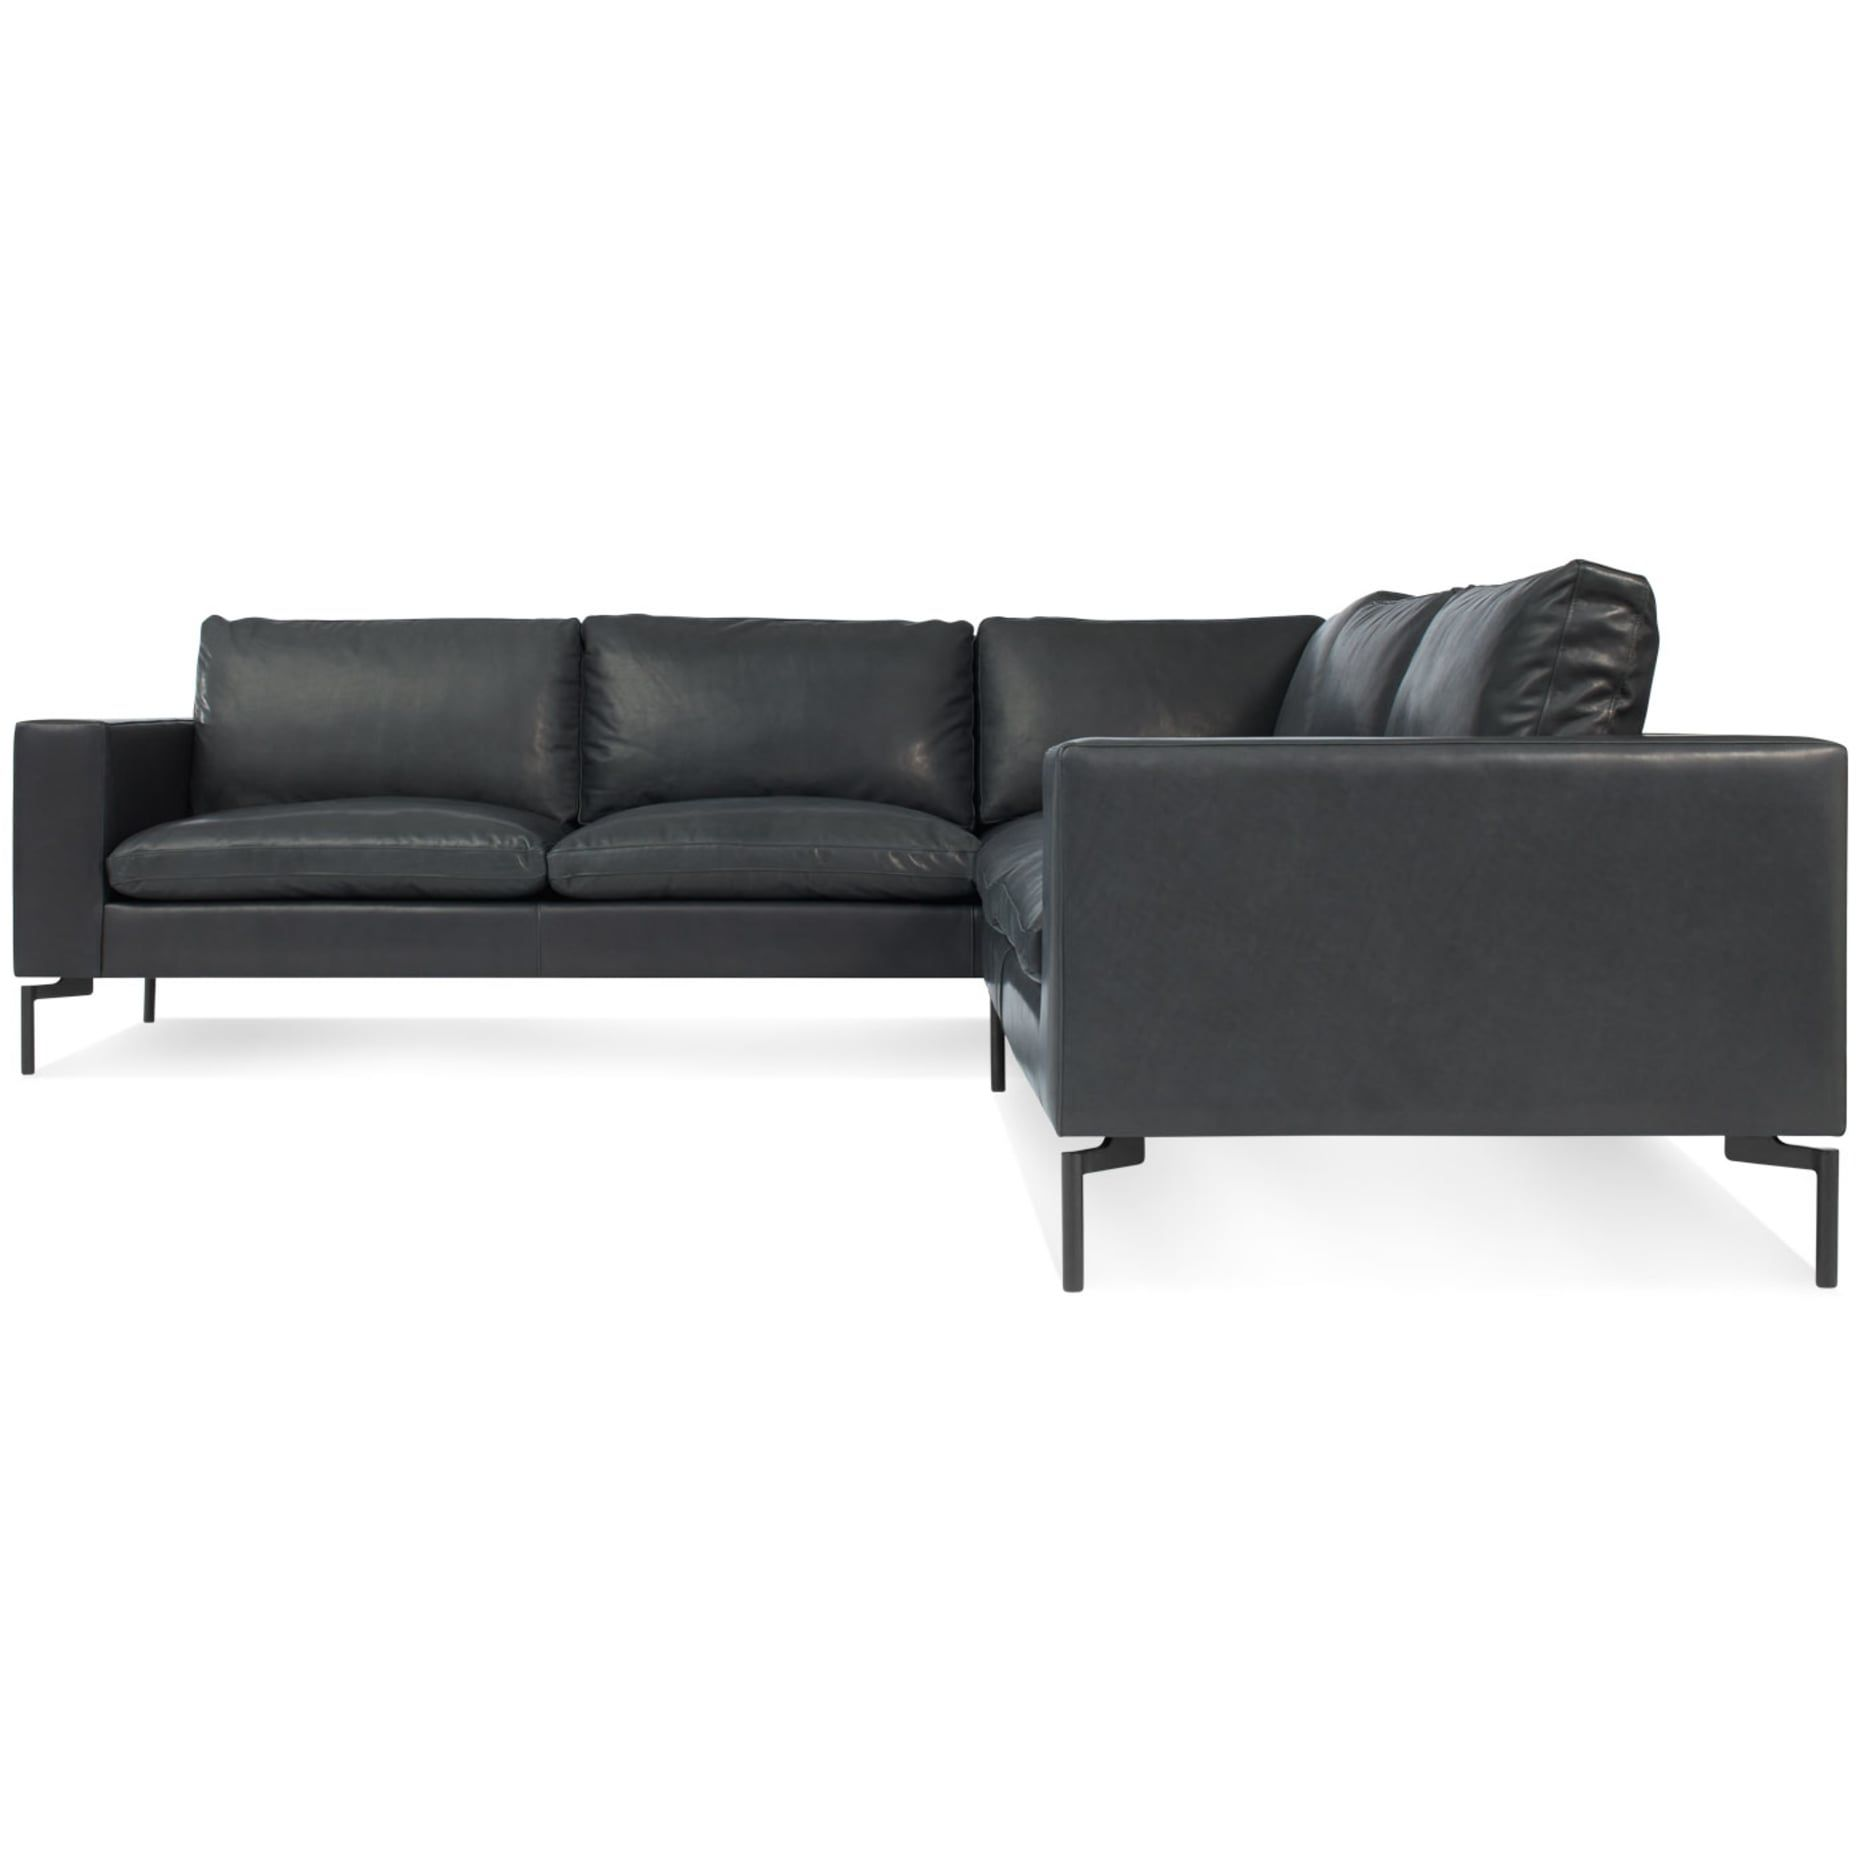 New Standard Left Sectional Sofa